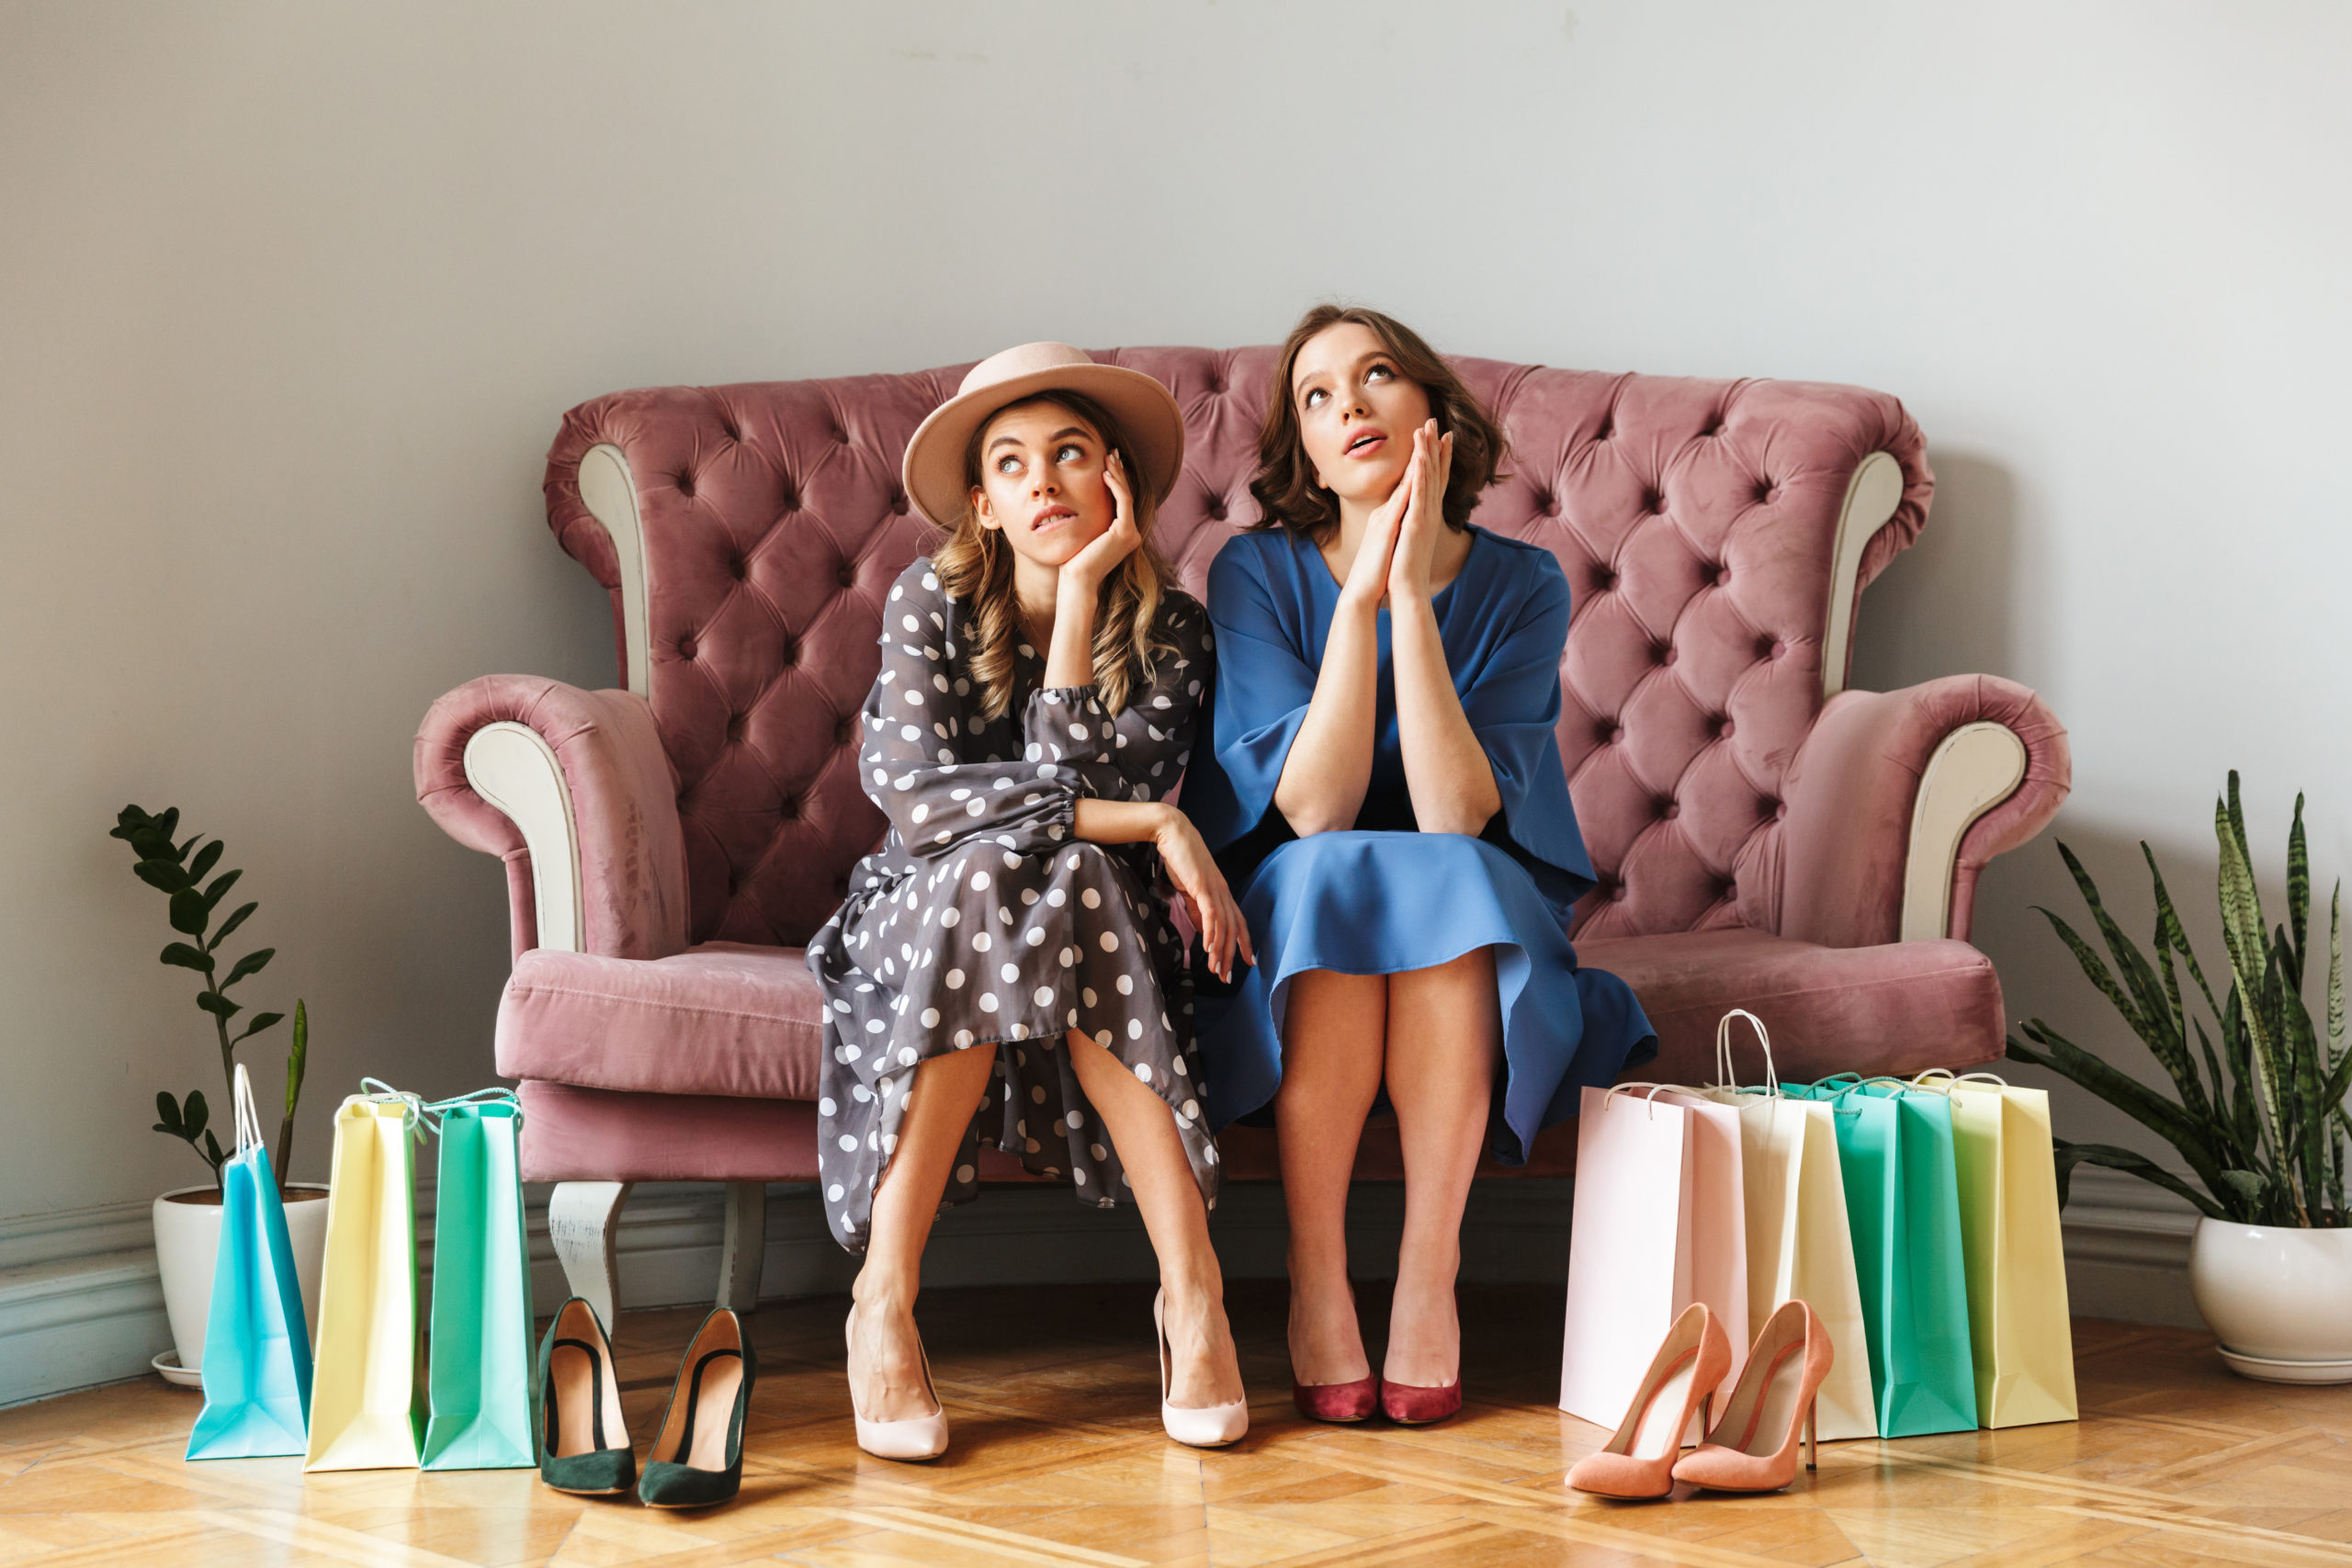 Image of two thinking young women shopaholics sitting indoors in shop showroom with shopping bags.